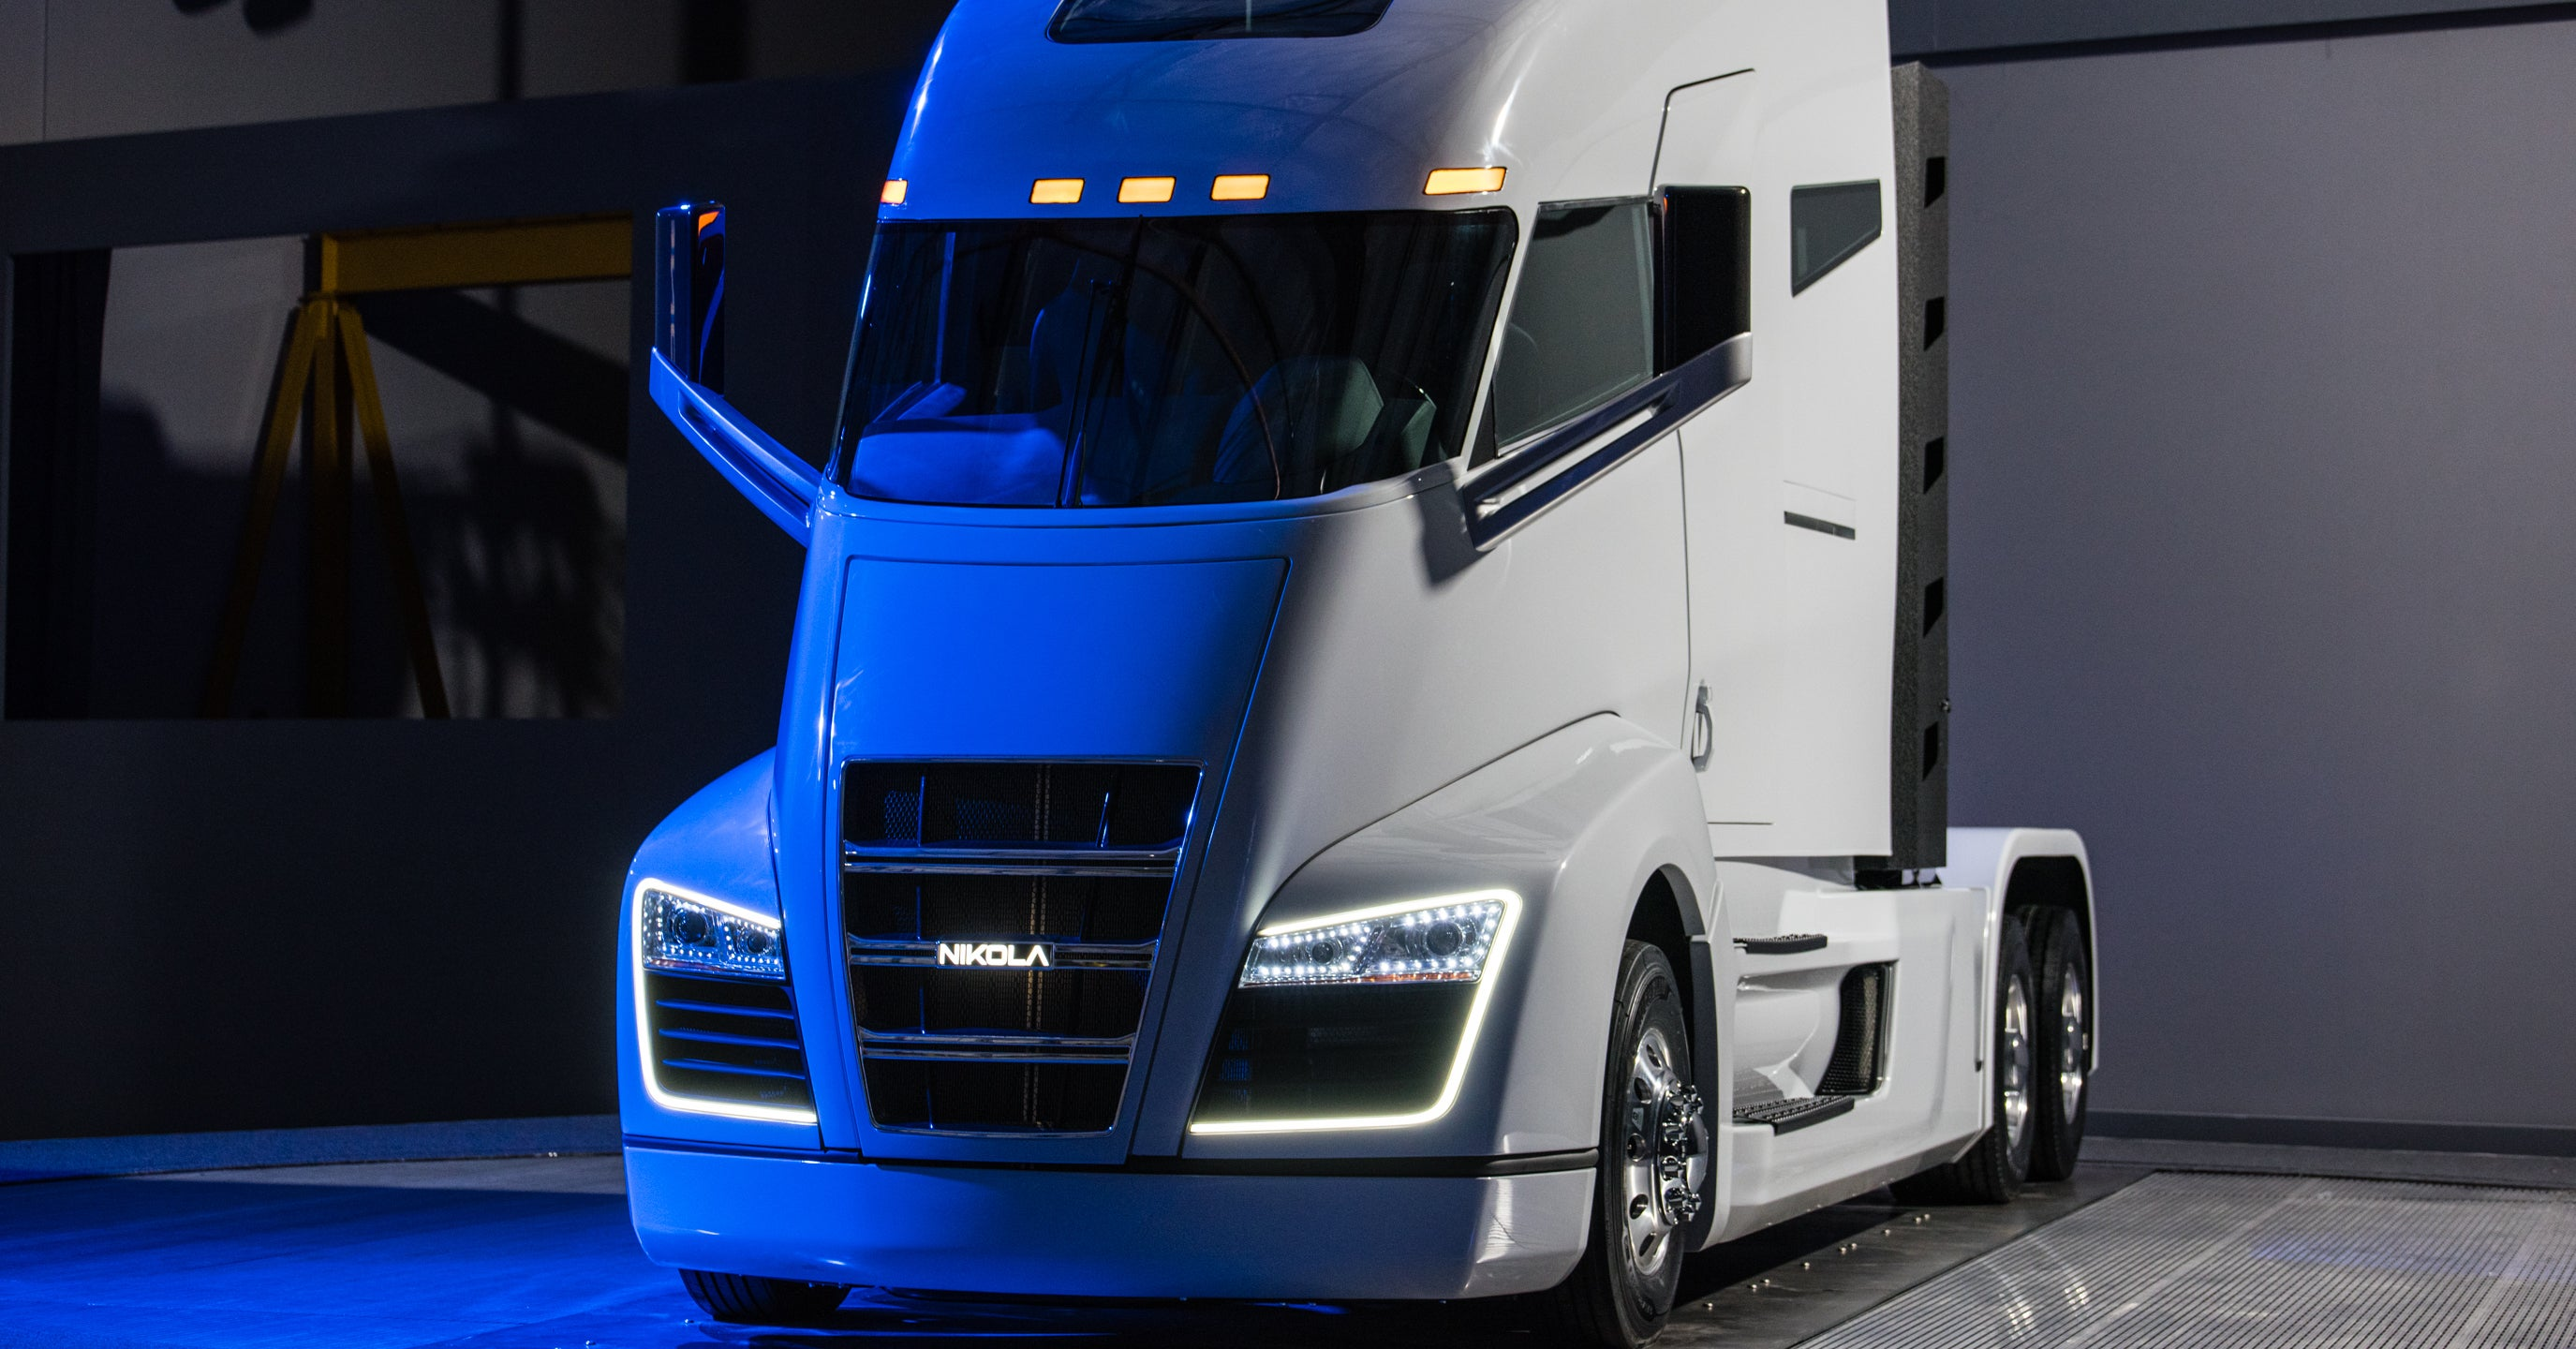 Nikola Stock Drops 26% After BP Backs Away From Hydrogen-Station Deal – Motley Fool